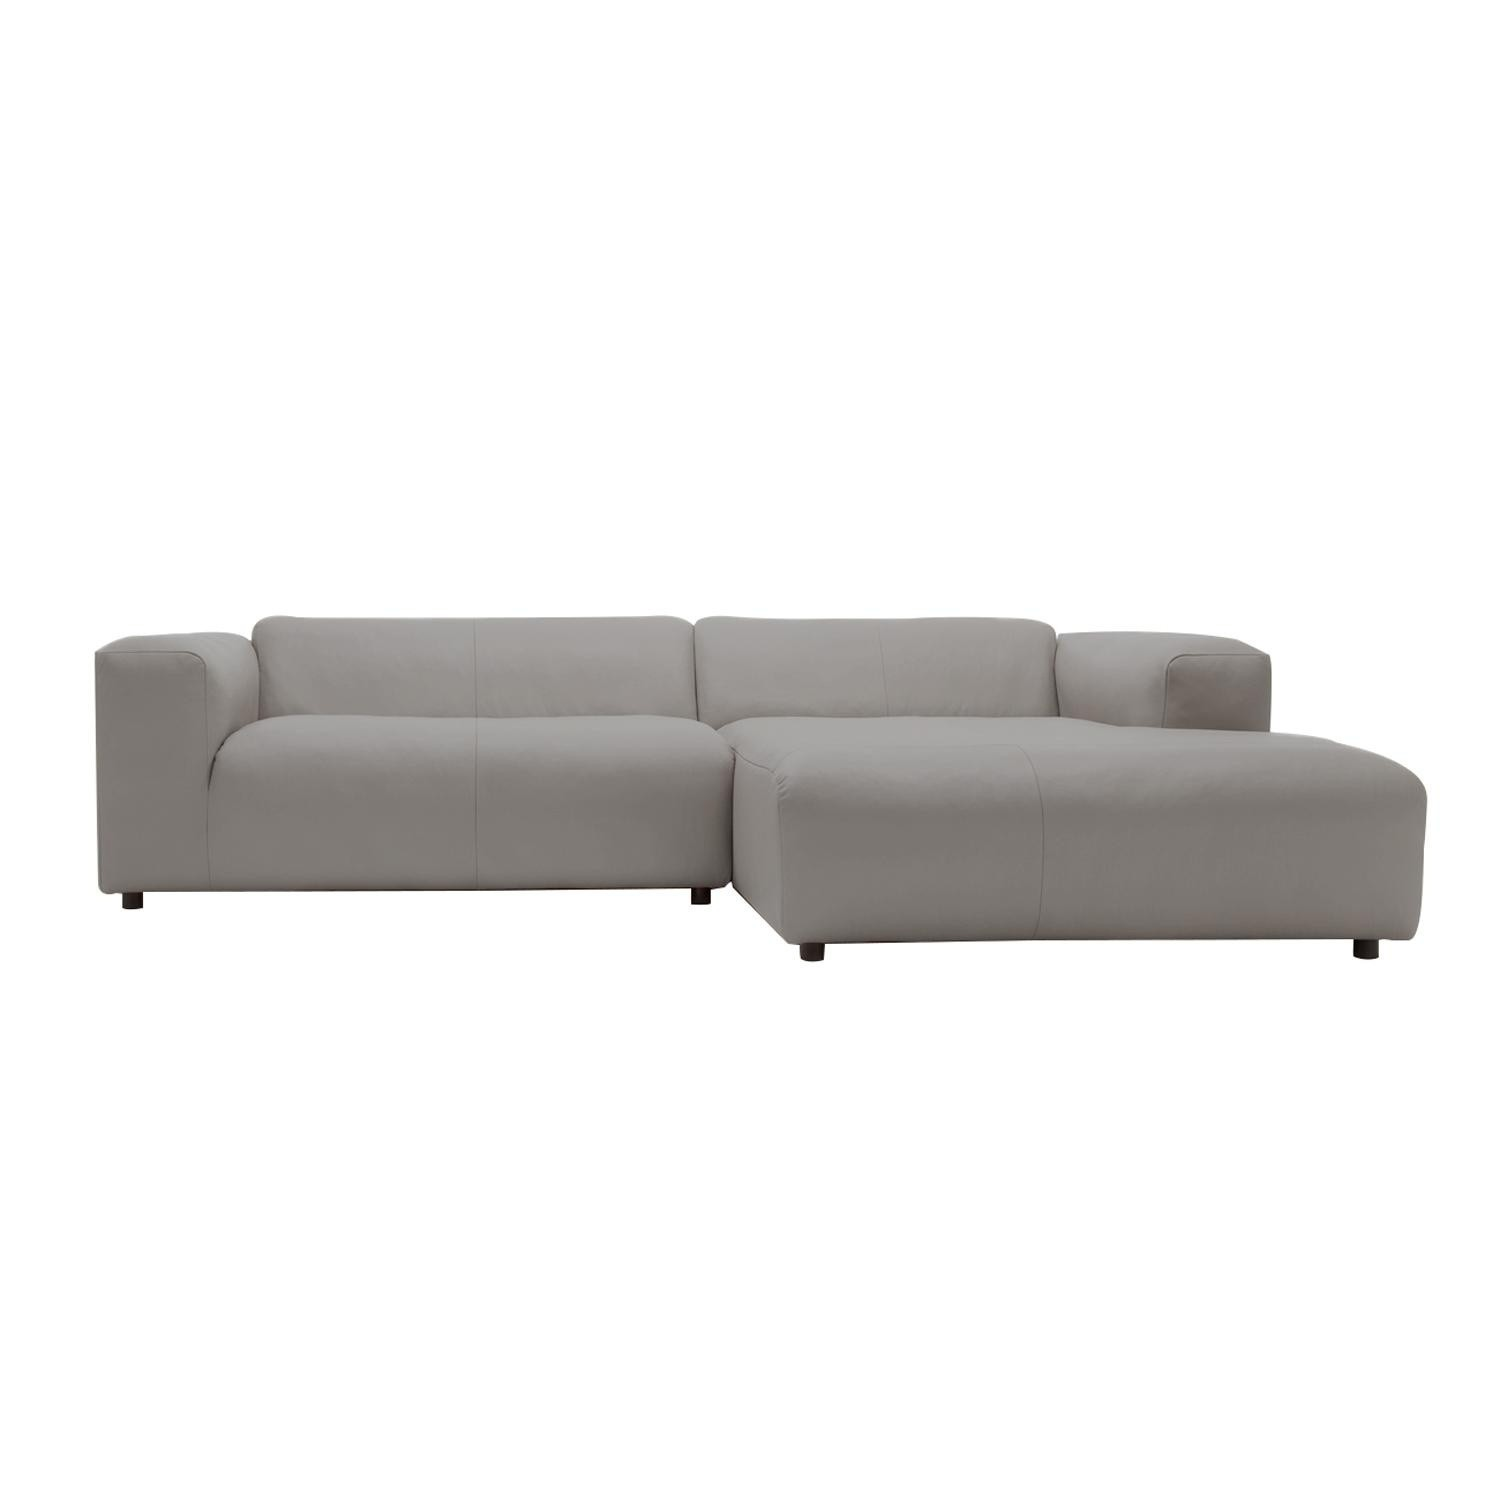 Rolf Benz Sofa Freistil Freistil 187 Lounge Sofa 260x185cm